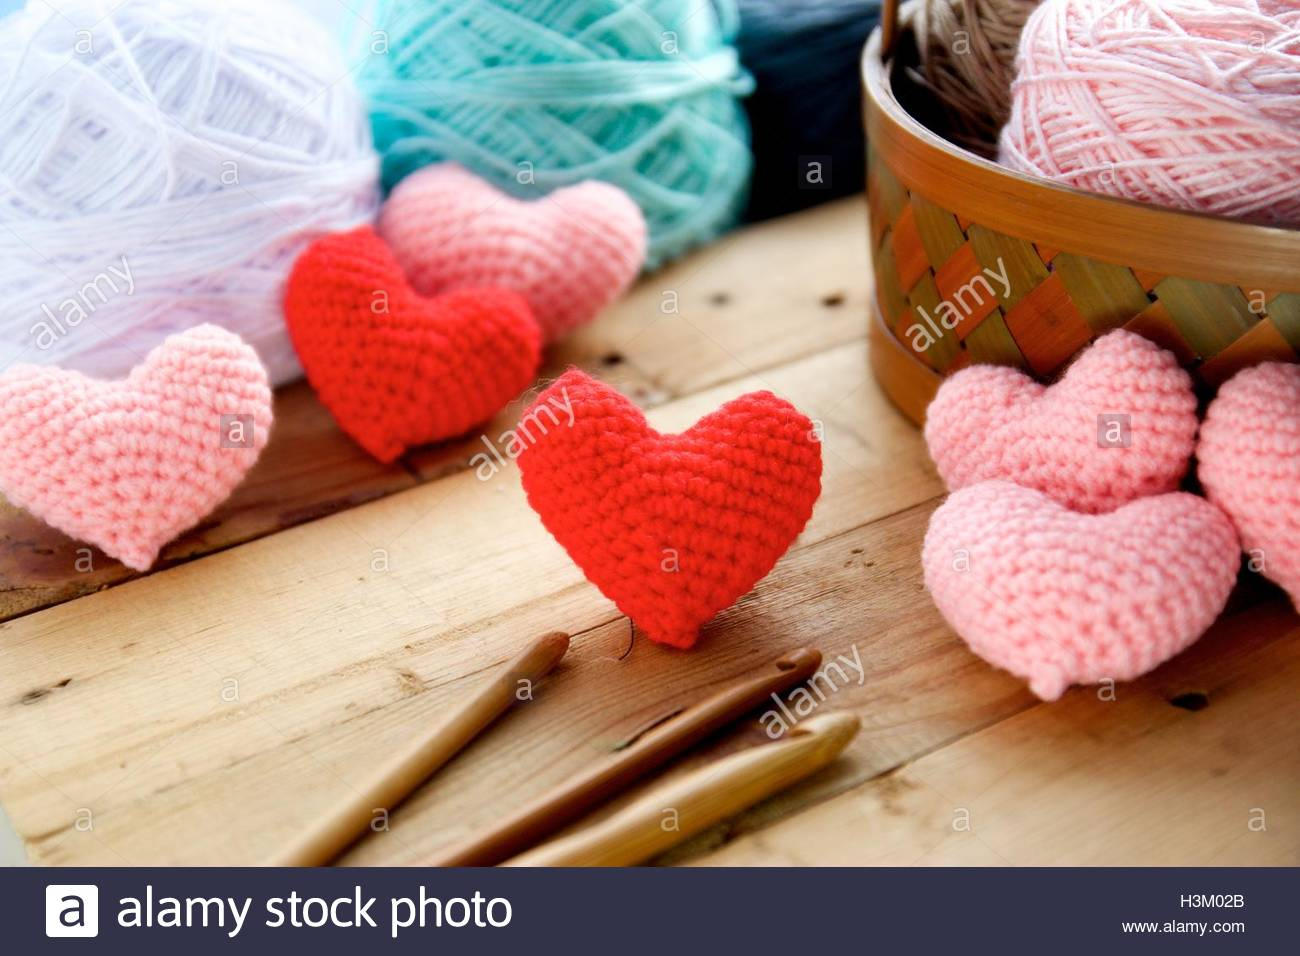 Free Download Heart Crochet On Wood Table And Ball Of Yarn Background Stock 1300x956 For Your Desktop Mobile Tablet Explore 42 Yarn Background Yarn Wallpapers Yarn Background Yarn Yoshi Wallpaper